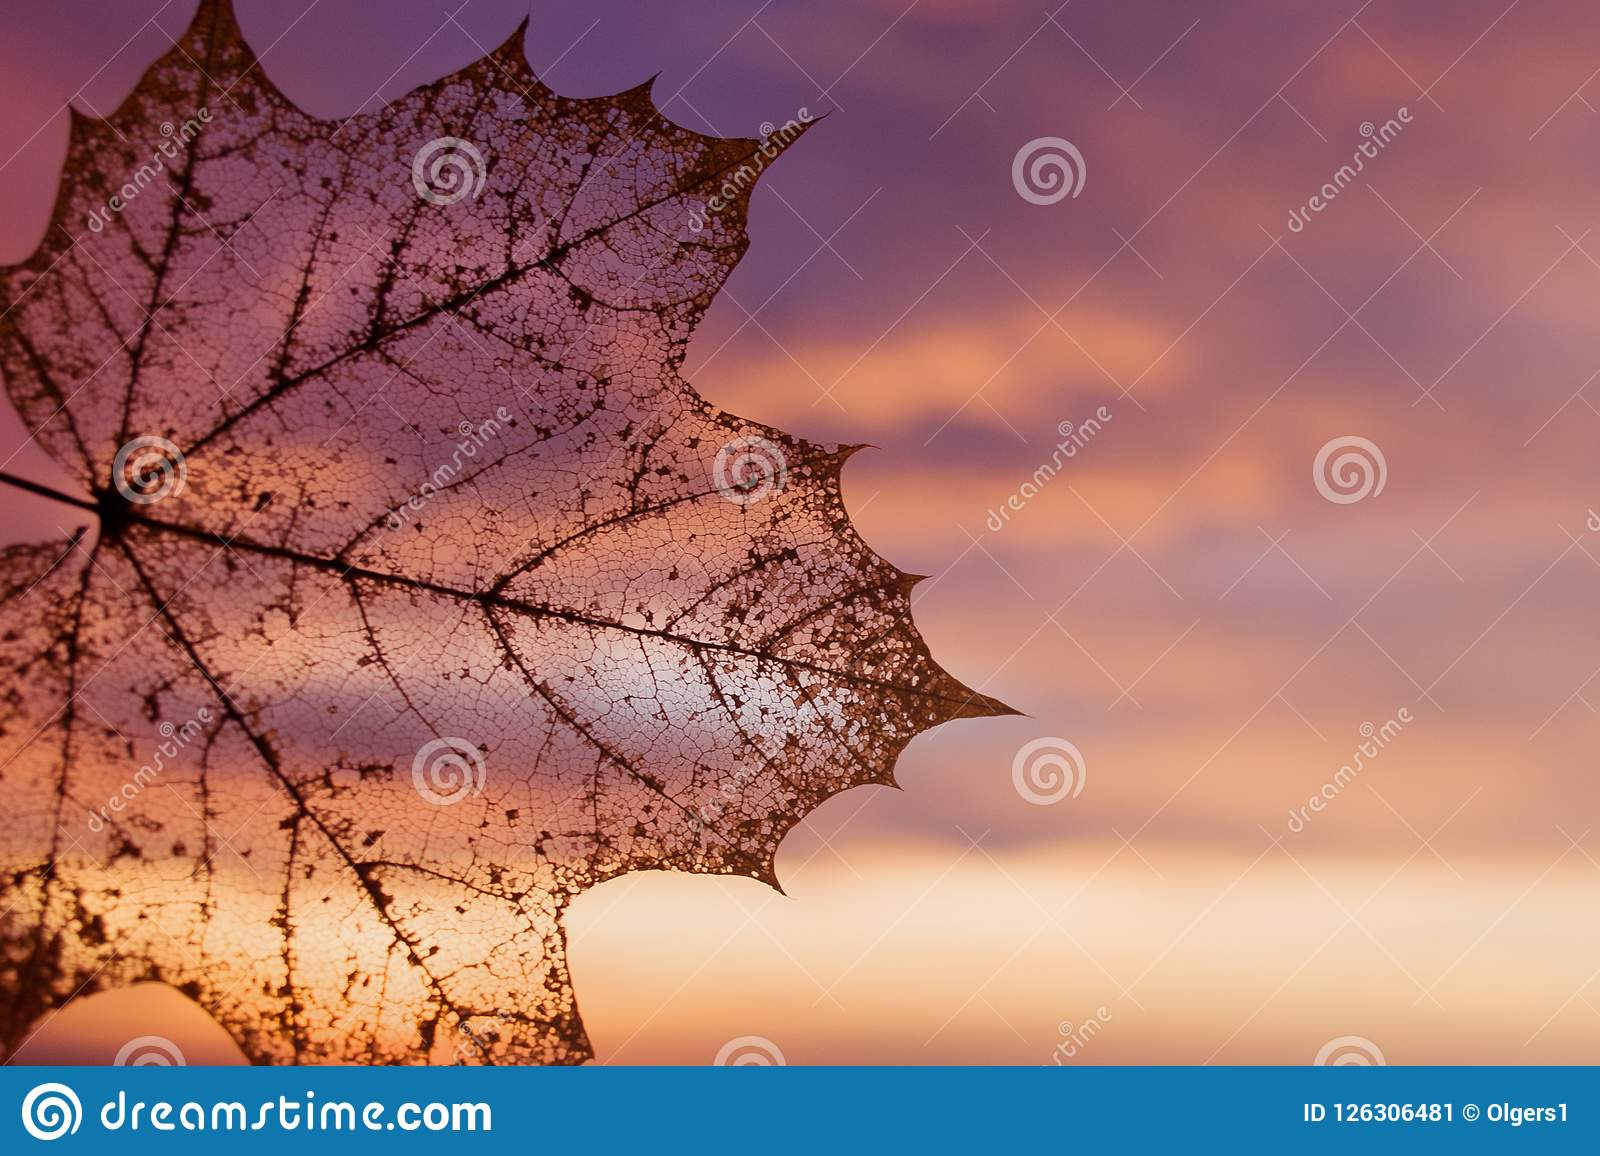 2 496 Maple Leaf Transparent Background Photos Free Royalty Free Stock Photos From Dreamstime